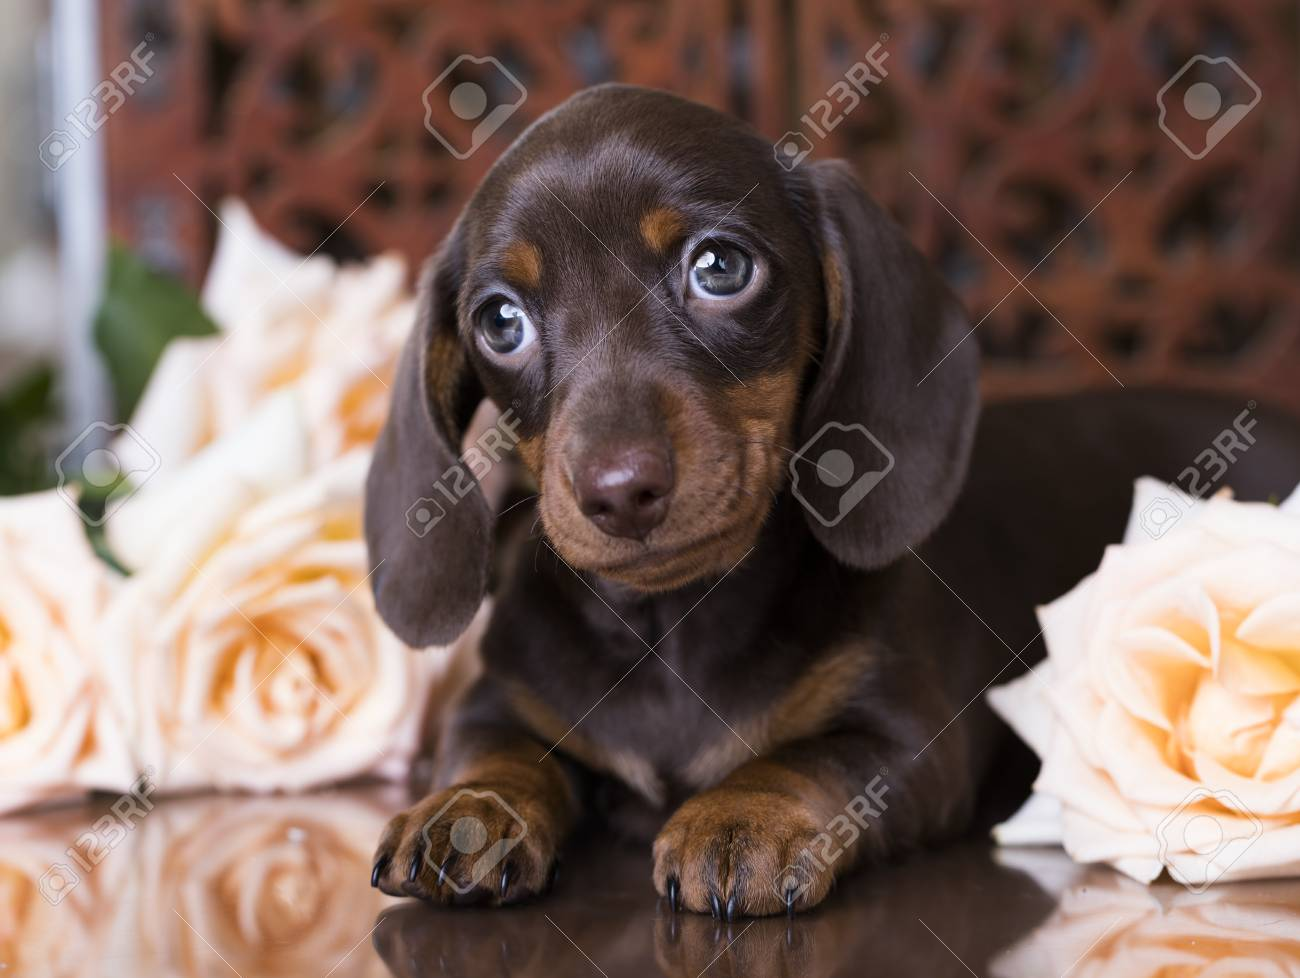 Puppy Dachshund Of Chocolate Color Stock Photo Picture And Royalty Free Image Image 83758628